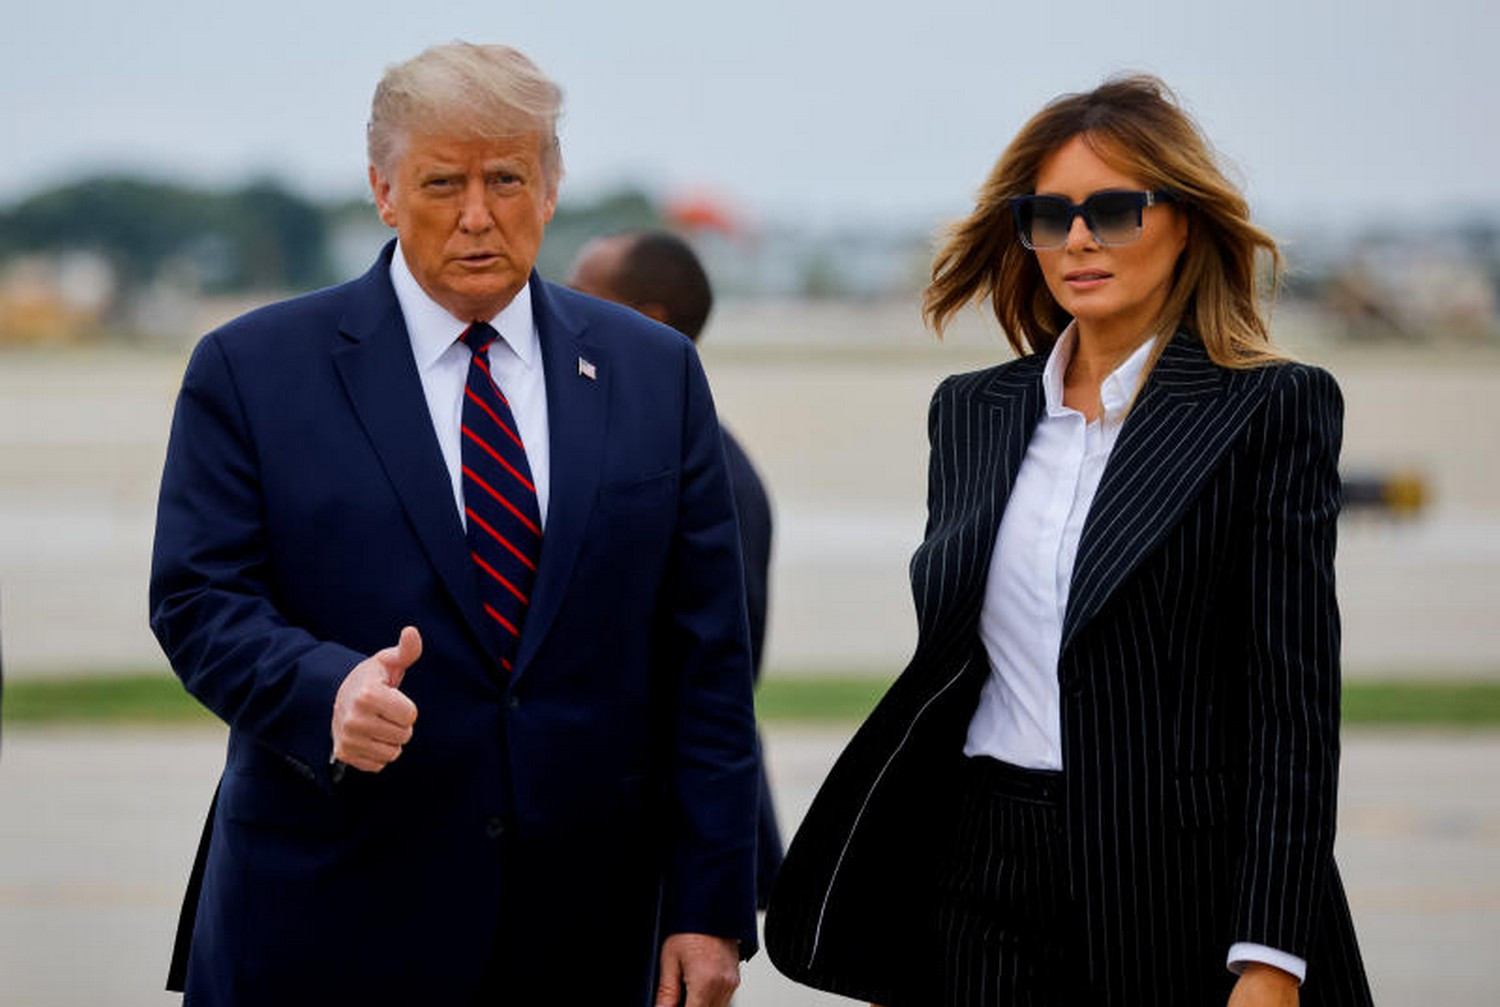 President Trump and Melania test positive for Coronavirus lindaikejisblog